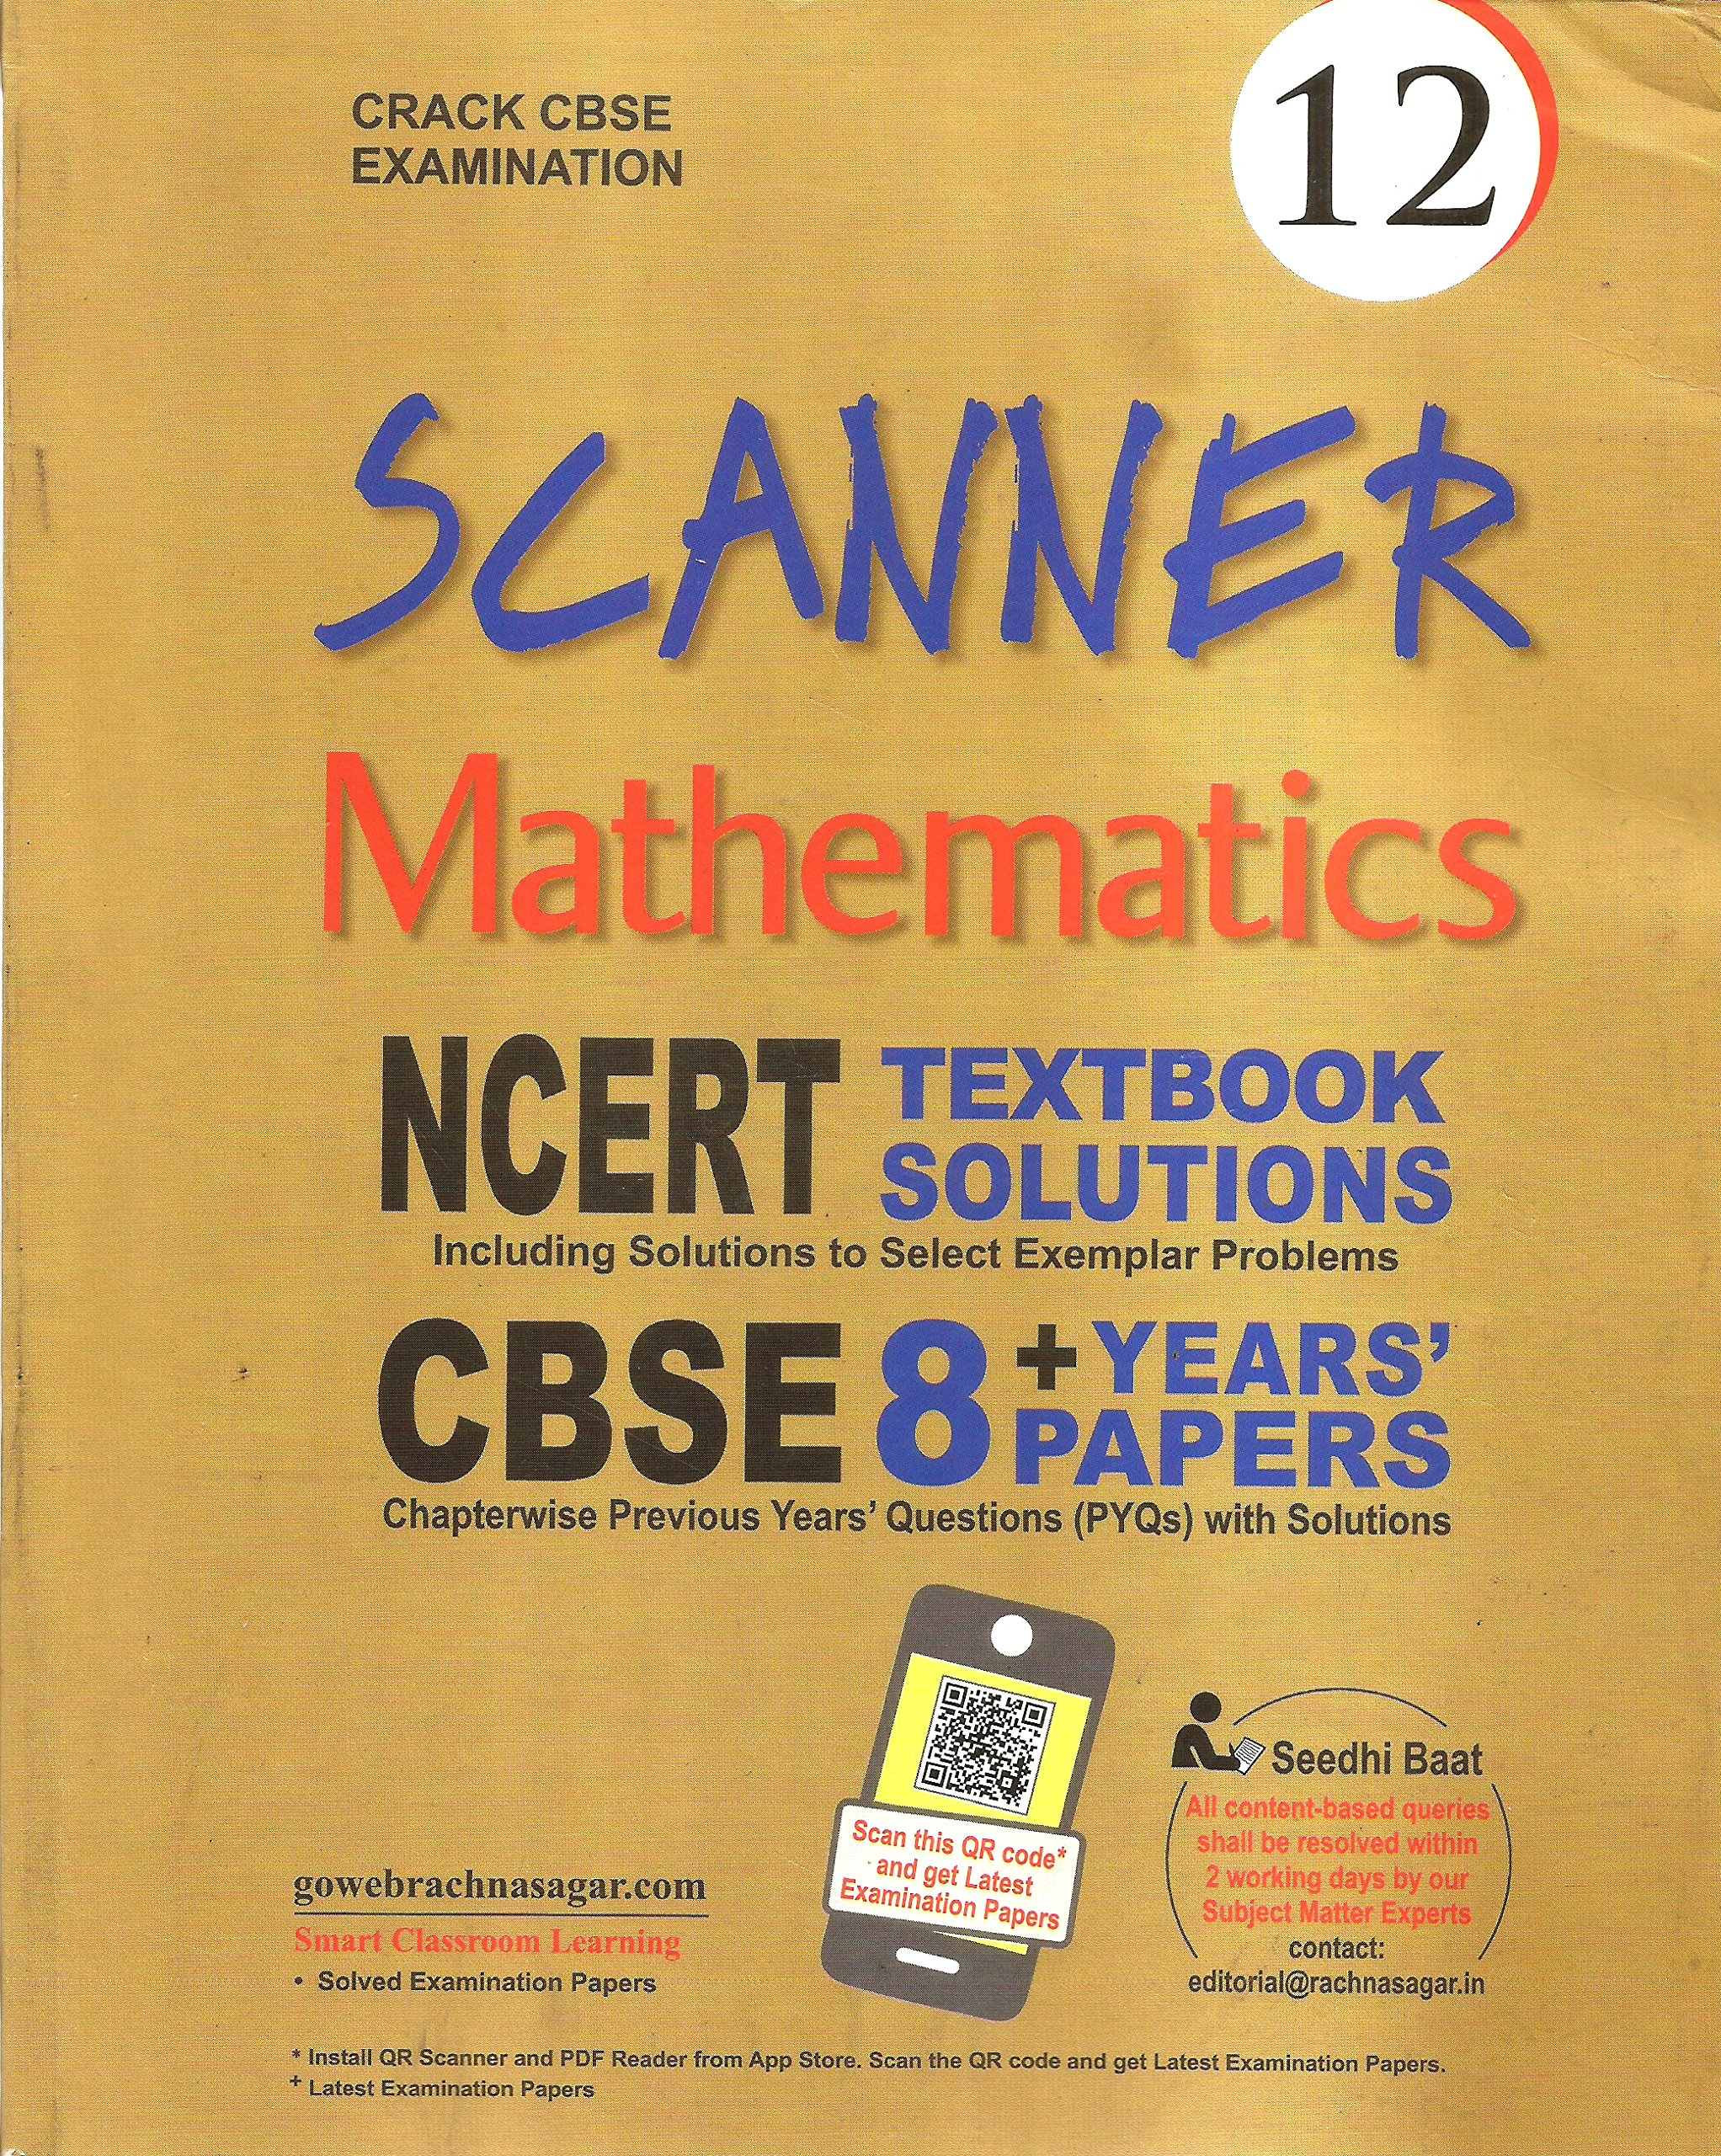 Buy SCANNER MATHEMATICS CLASS - XII Book Online at Low Prices in India |  SCANNER MATHEMATICS CLASS - XII Reviews & Ratings - Amazon.in